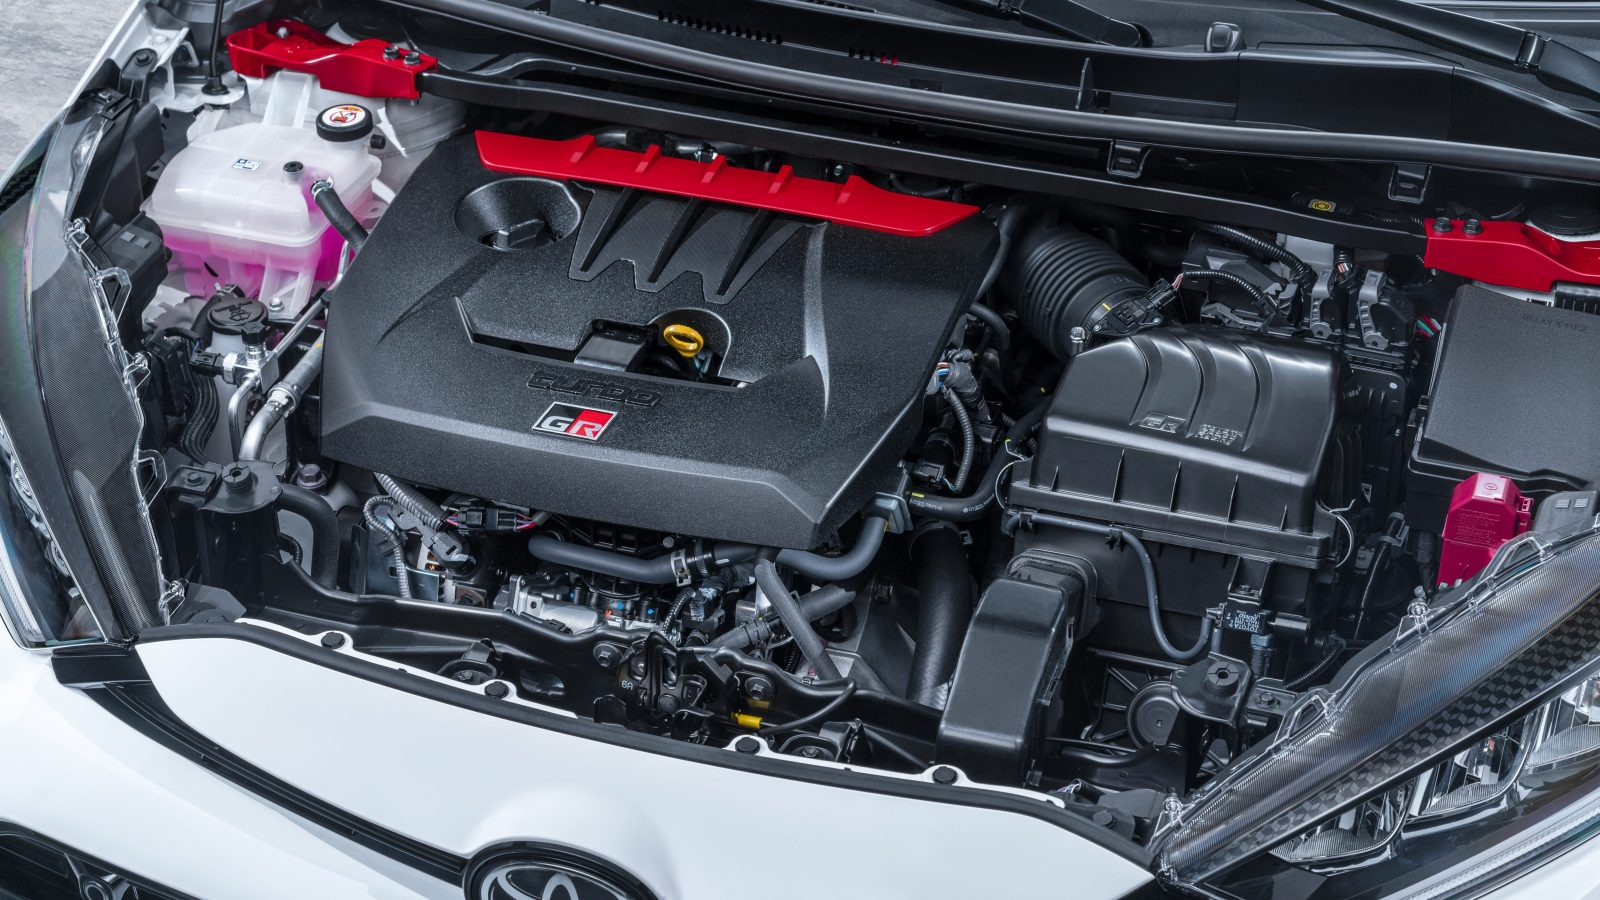 Toyota G16E-GTS engine in the GR Yaris